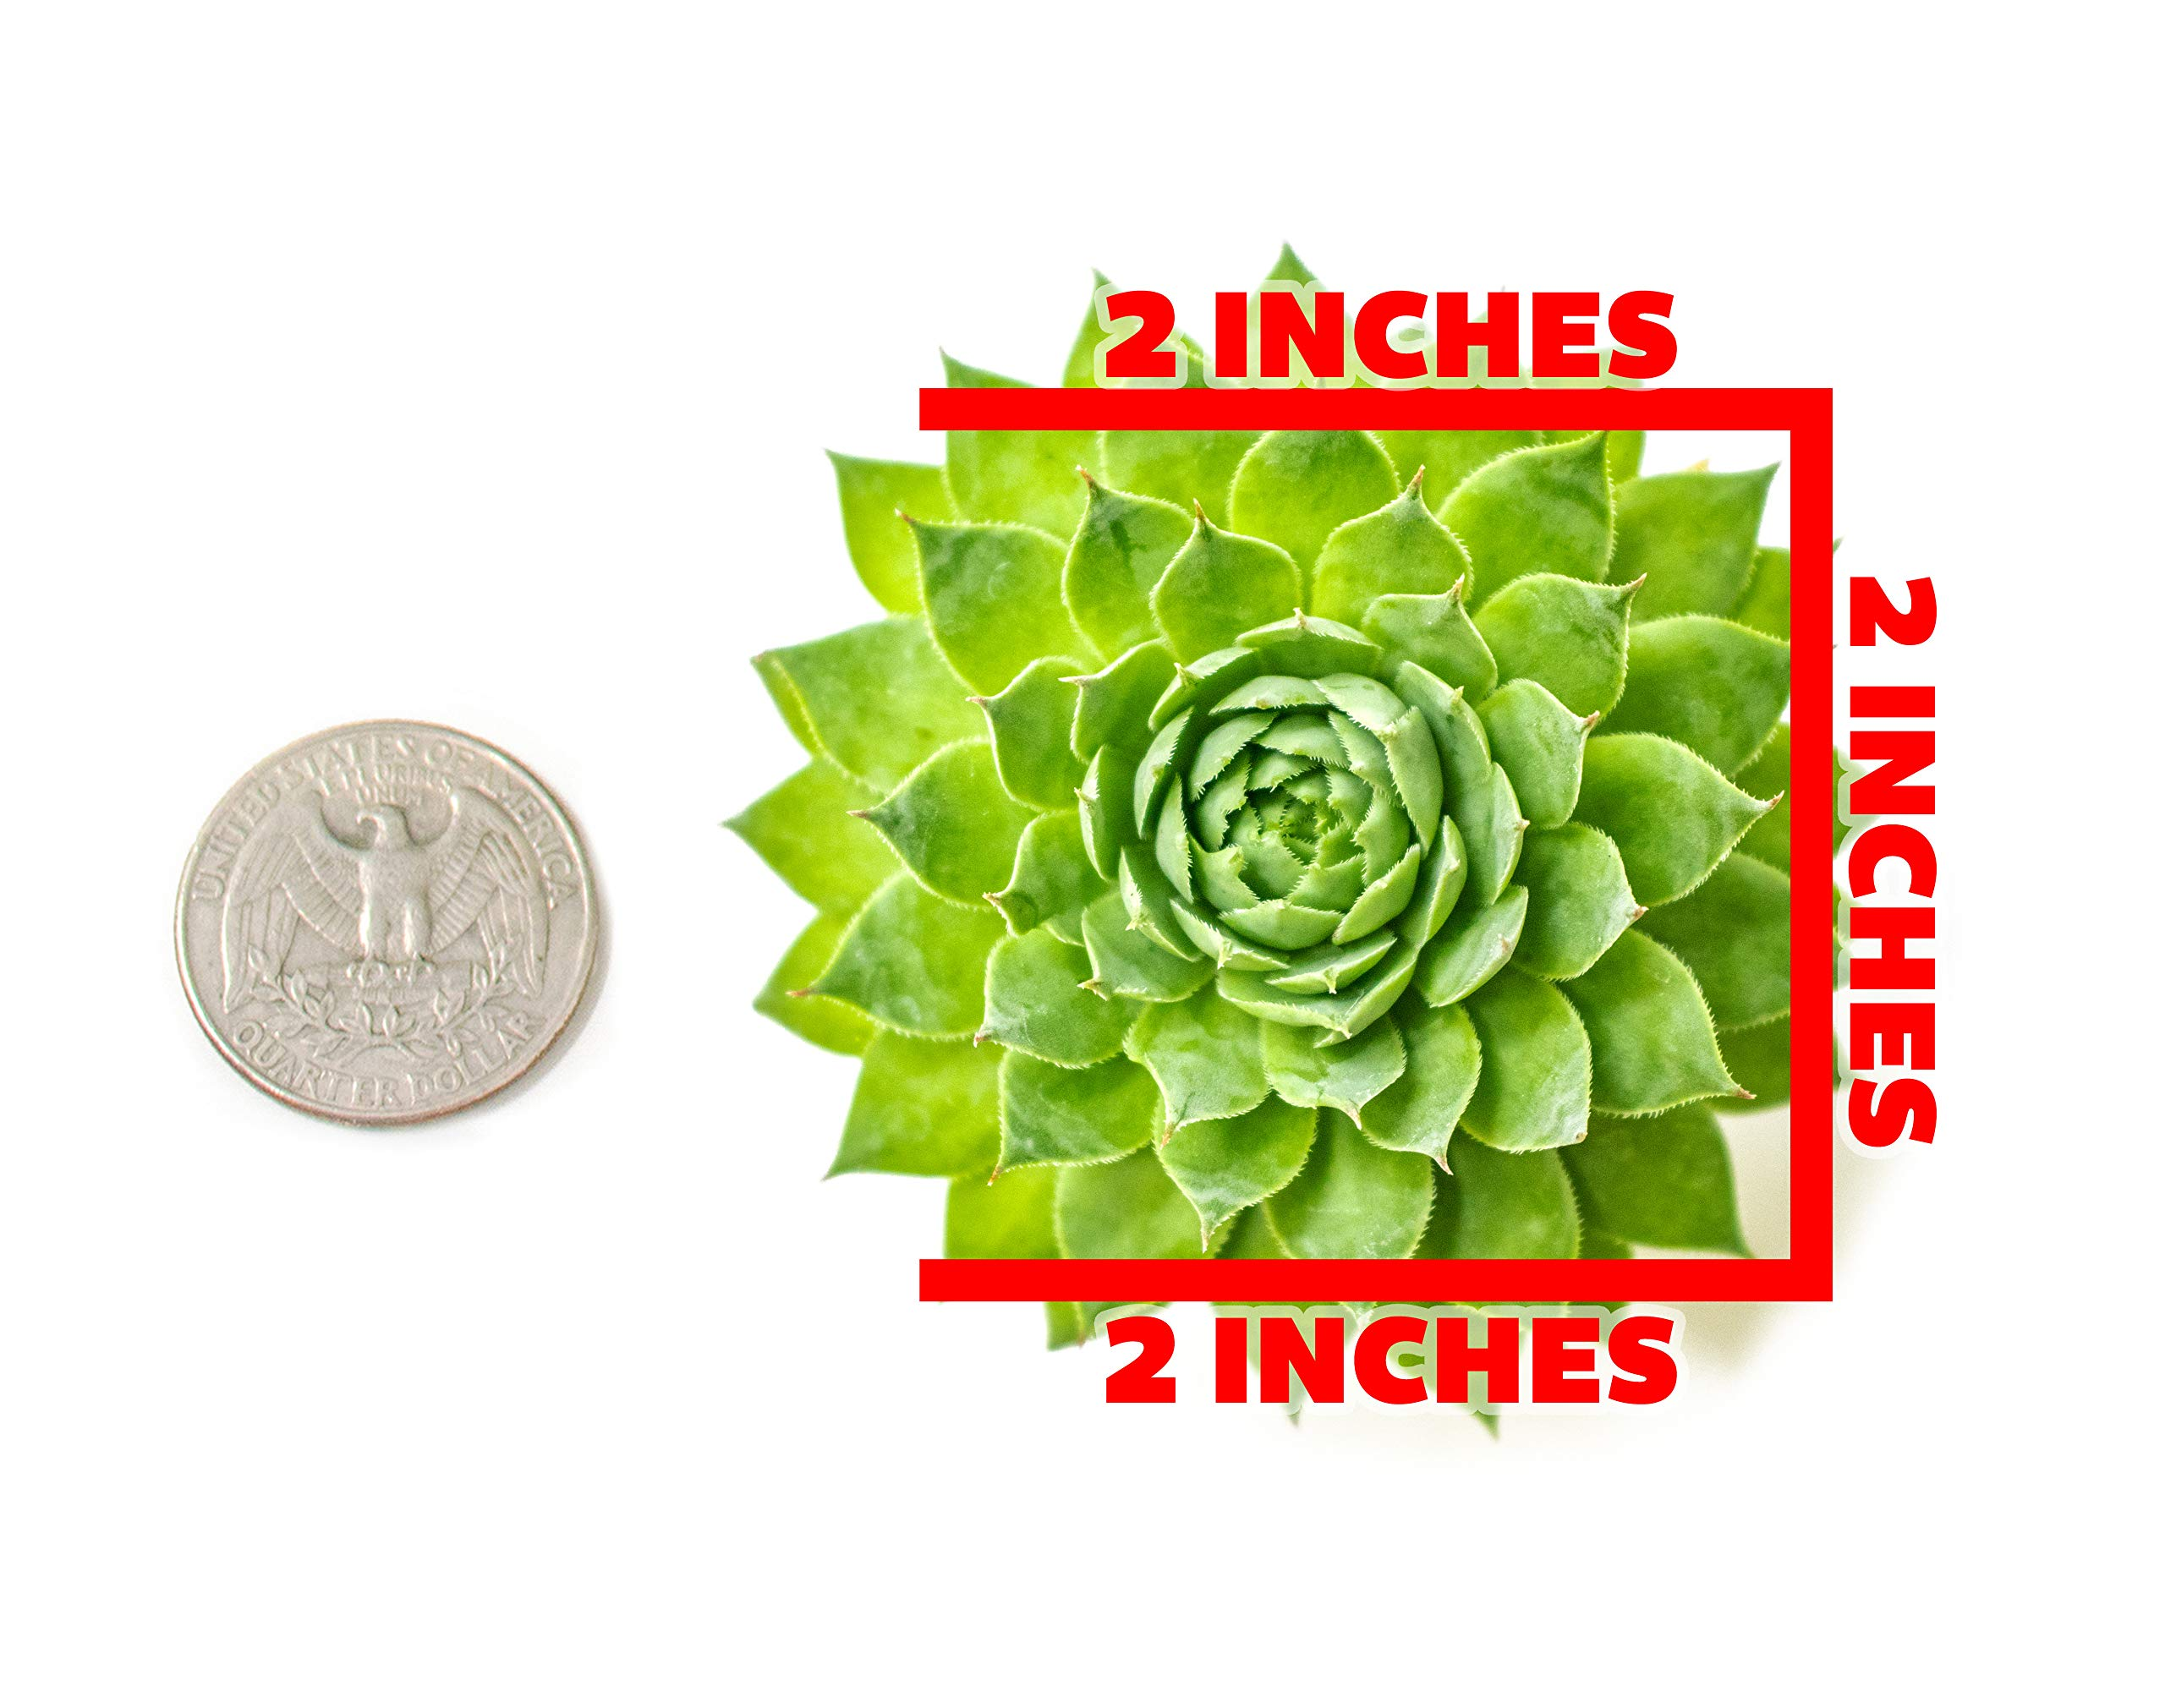 Succulent Plants | 20 Sempervivum Succulents | Rooted in Planter Pots with Soil | Real Live Indoor Plants | Gifts or Room Decor by Plants for Pets by Plants for Pets (Image #2)